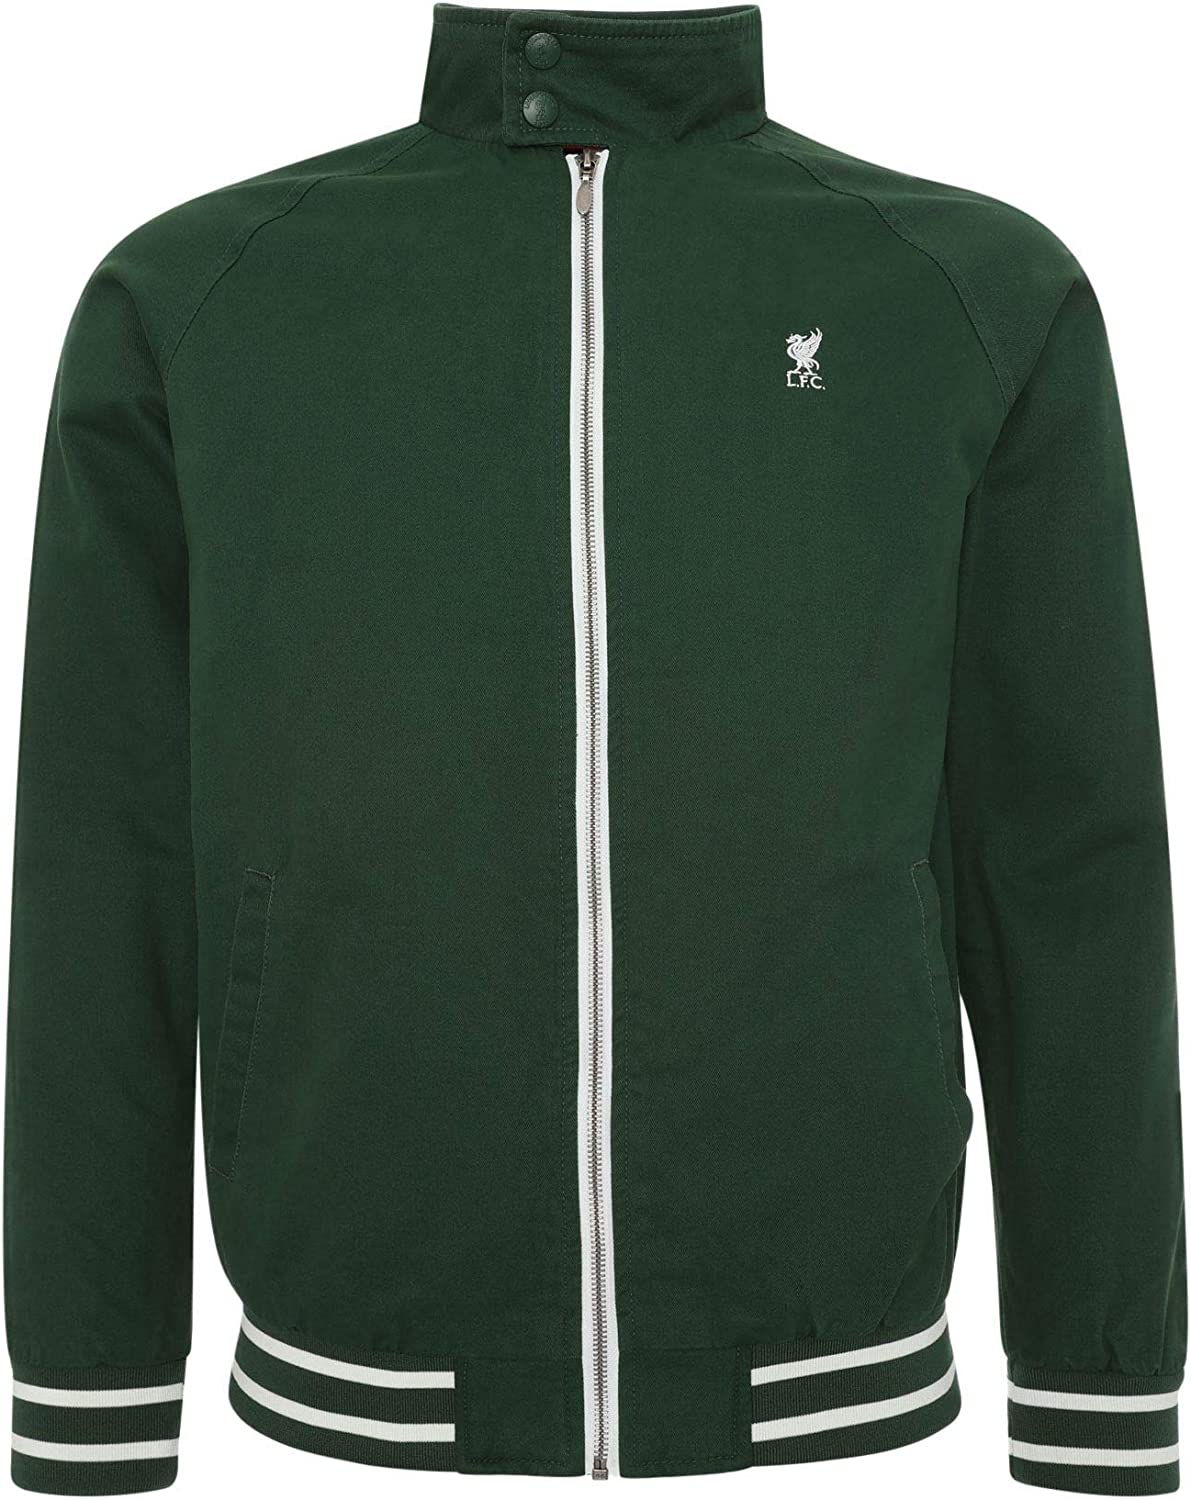 Liverpool FC Veste Harrington Verte Homme LFC Officiel